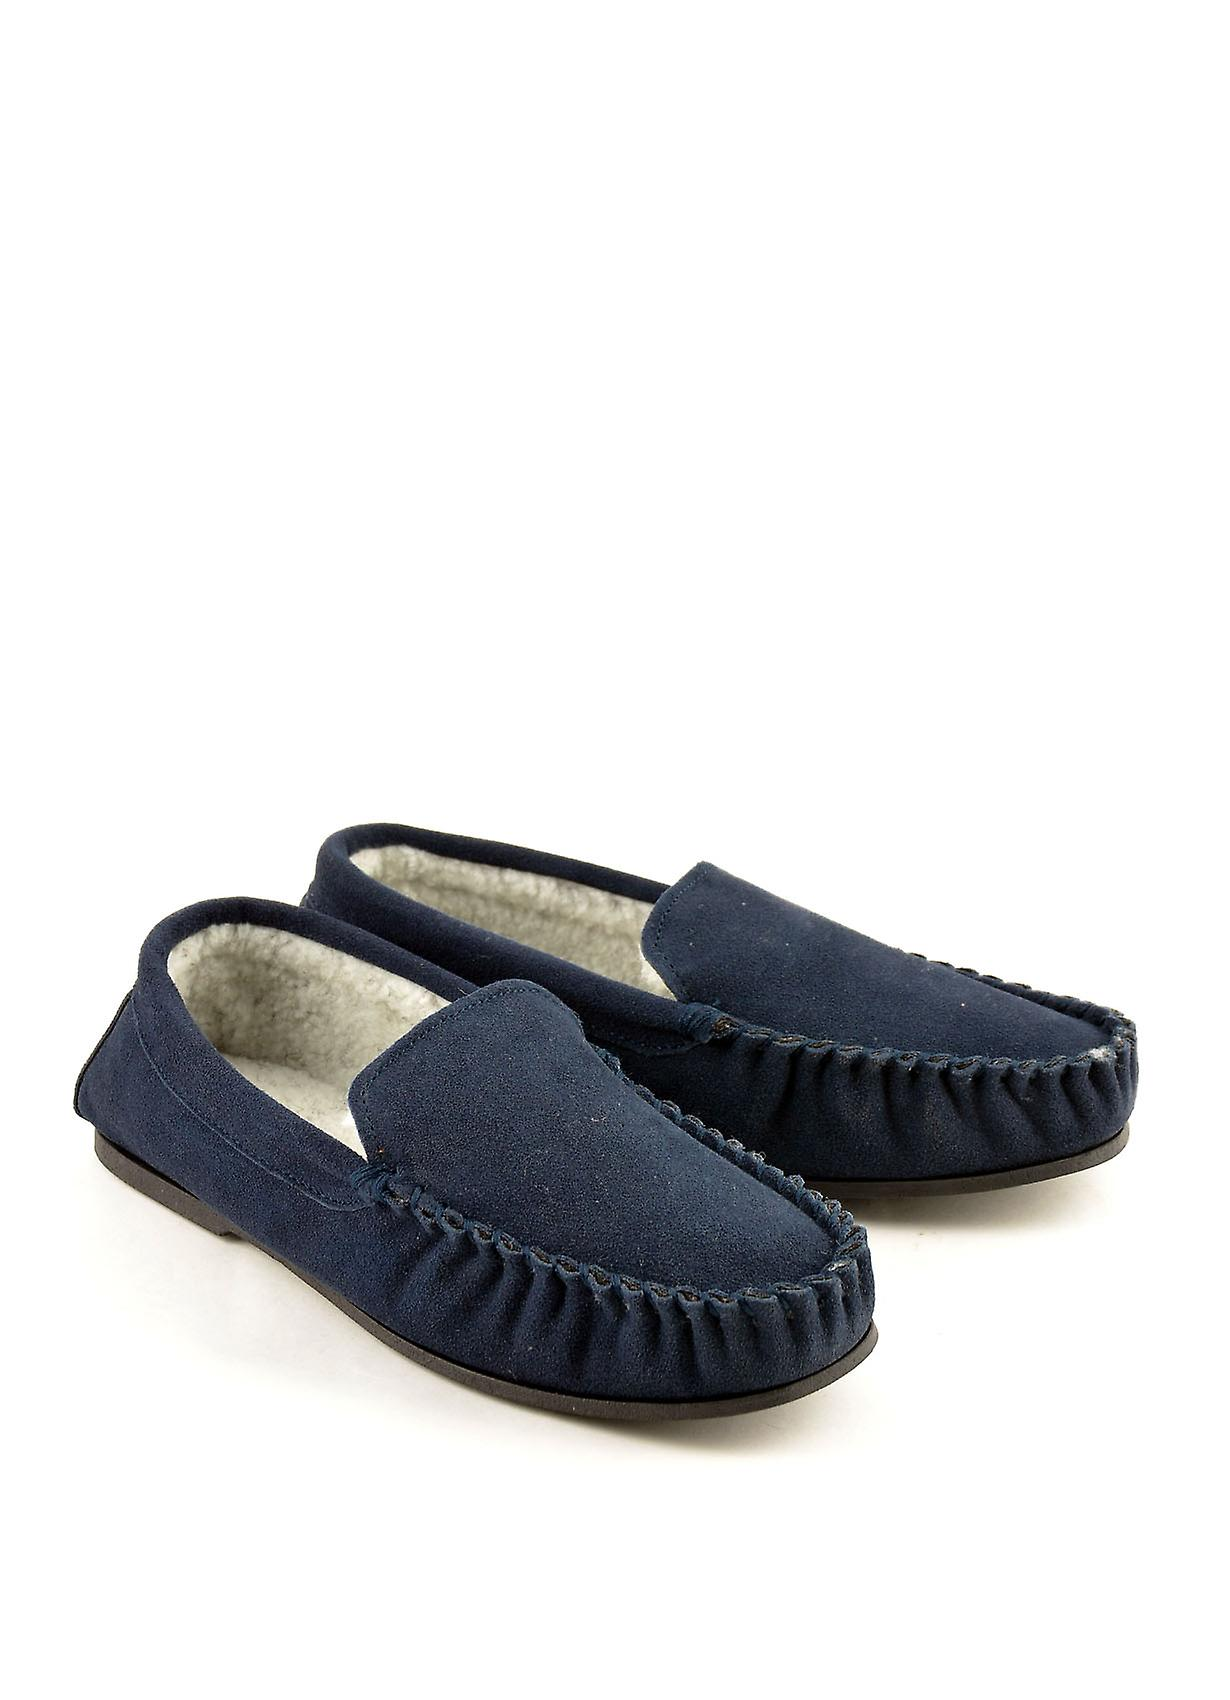 Scandic Suede Moccasin Slippers with Faux Lining in Navy